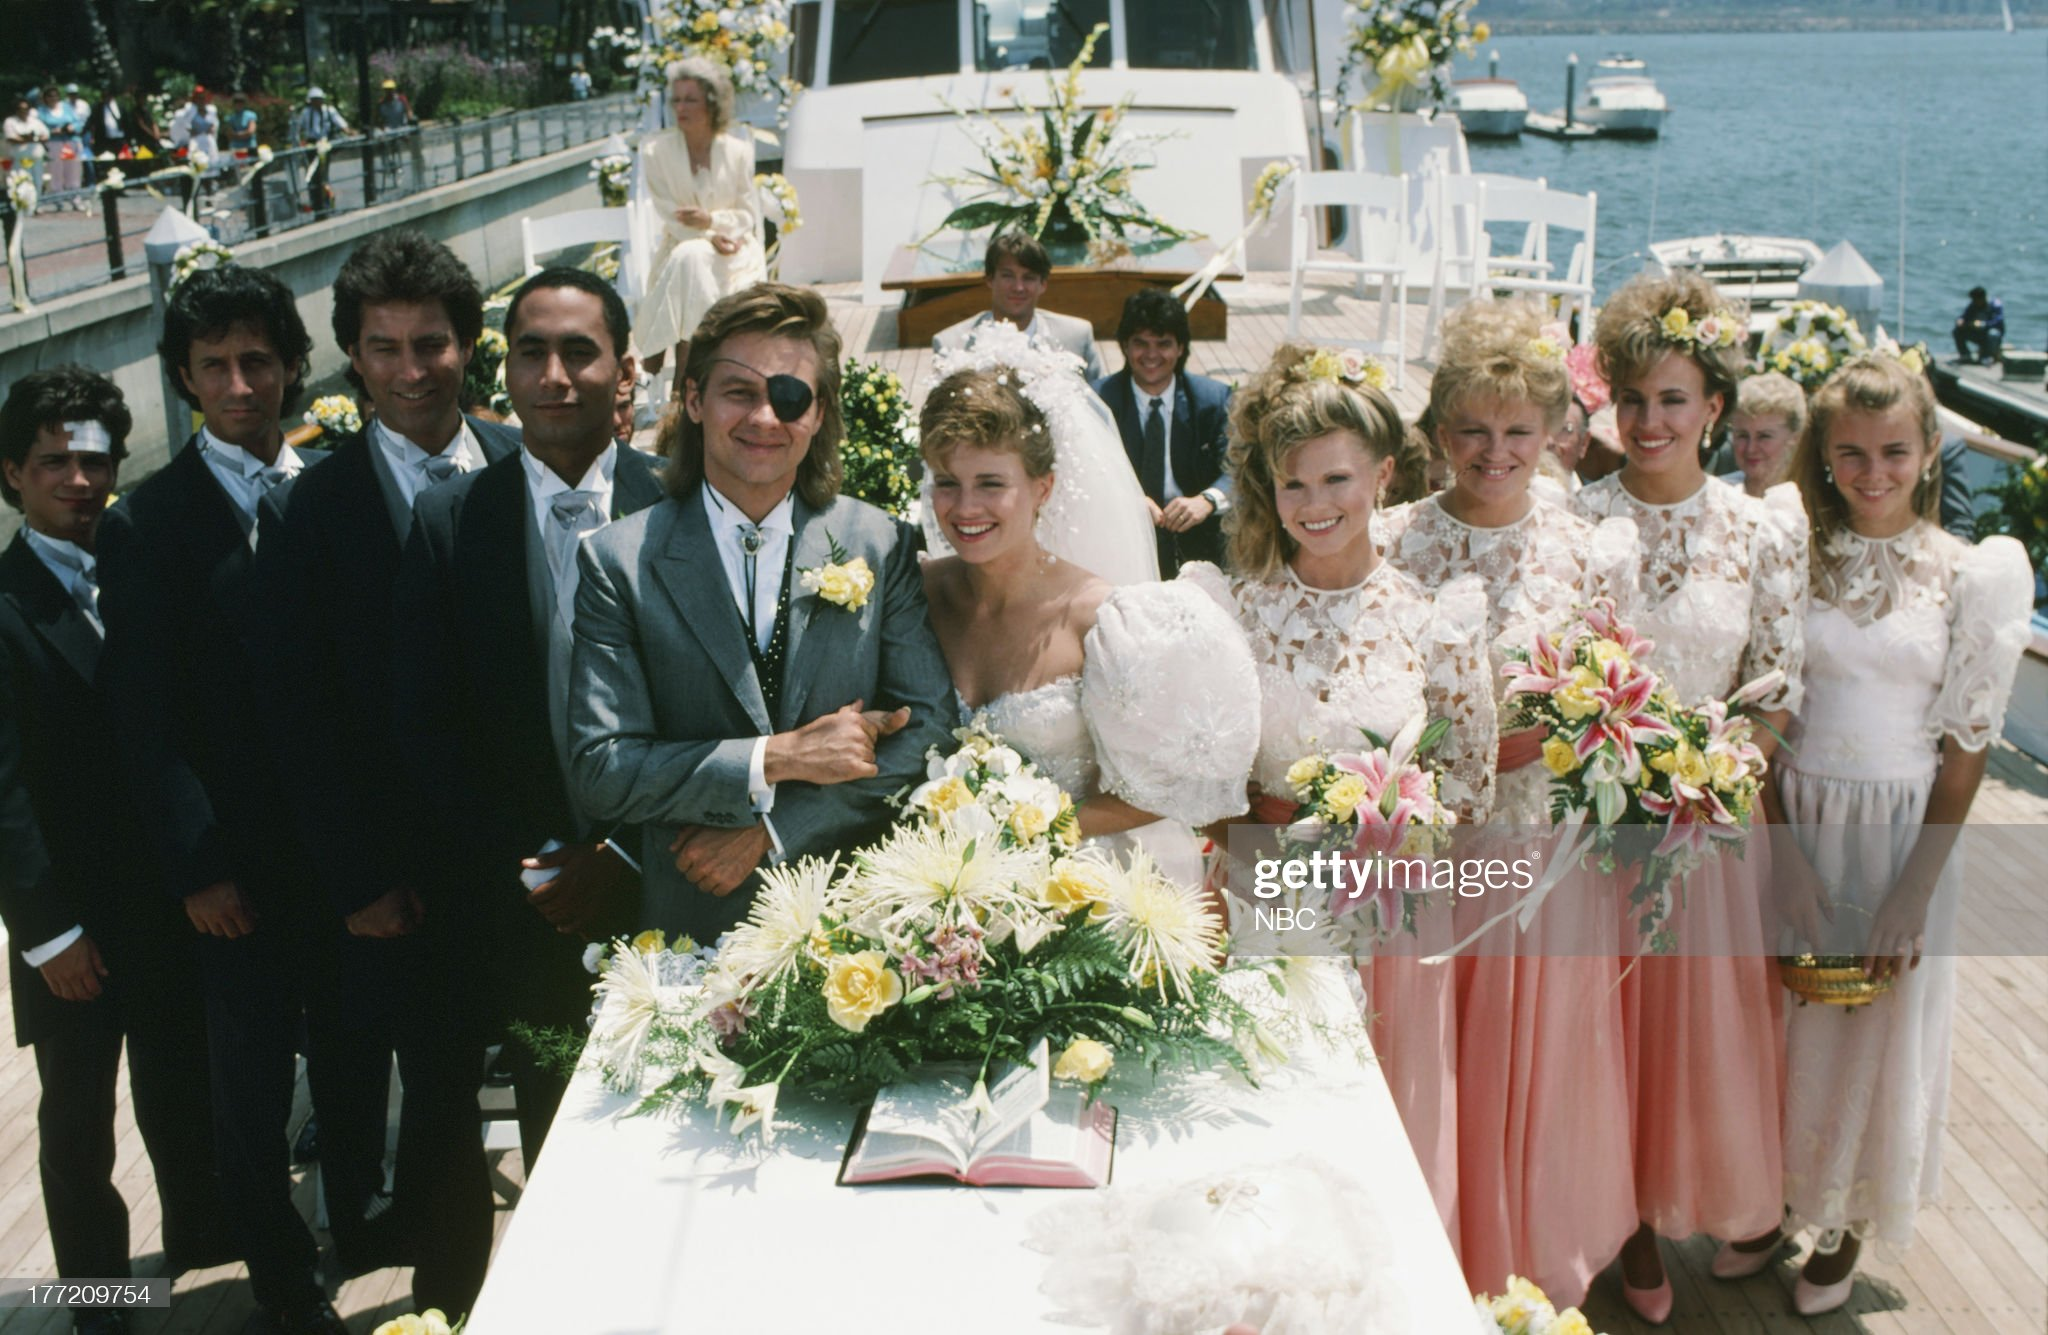 patch-johnson-kayla-brady-1st-wedding-pictured-billy-warlock-as-picture-id177209754